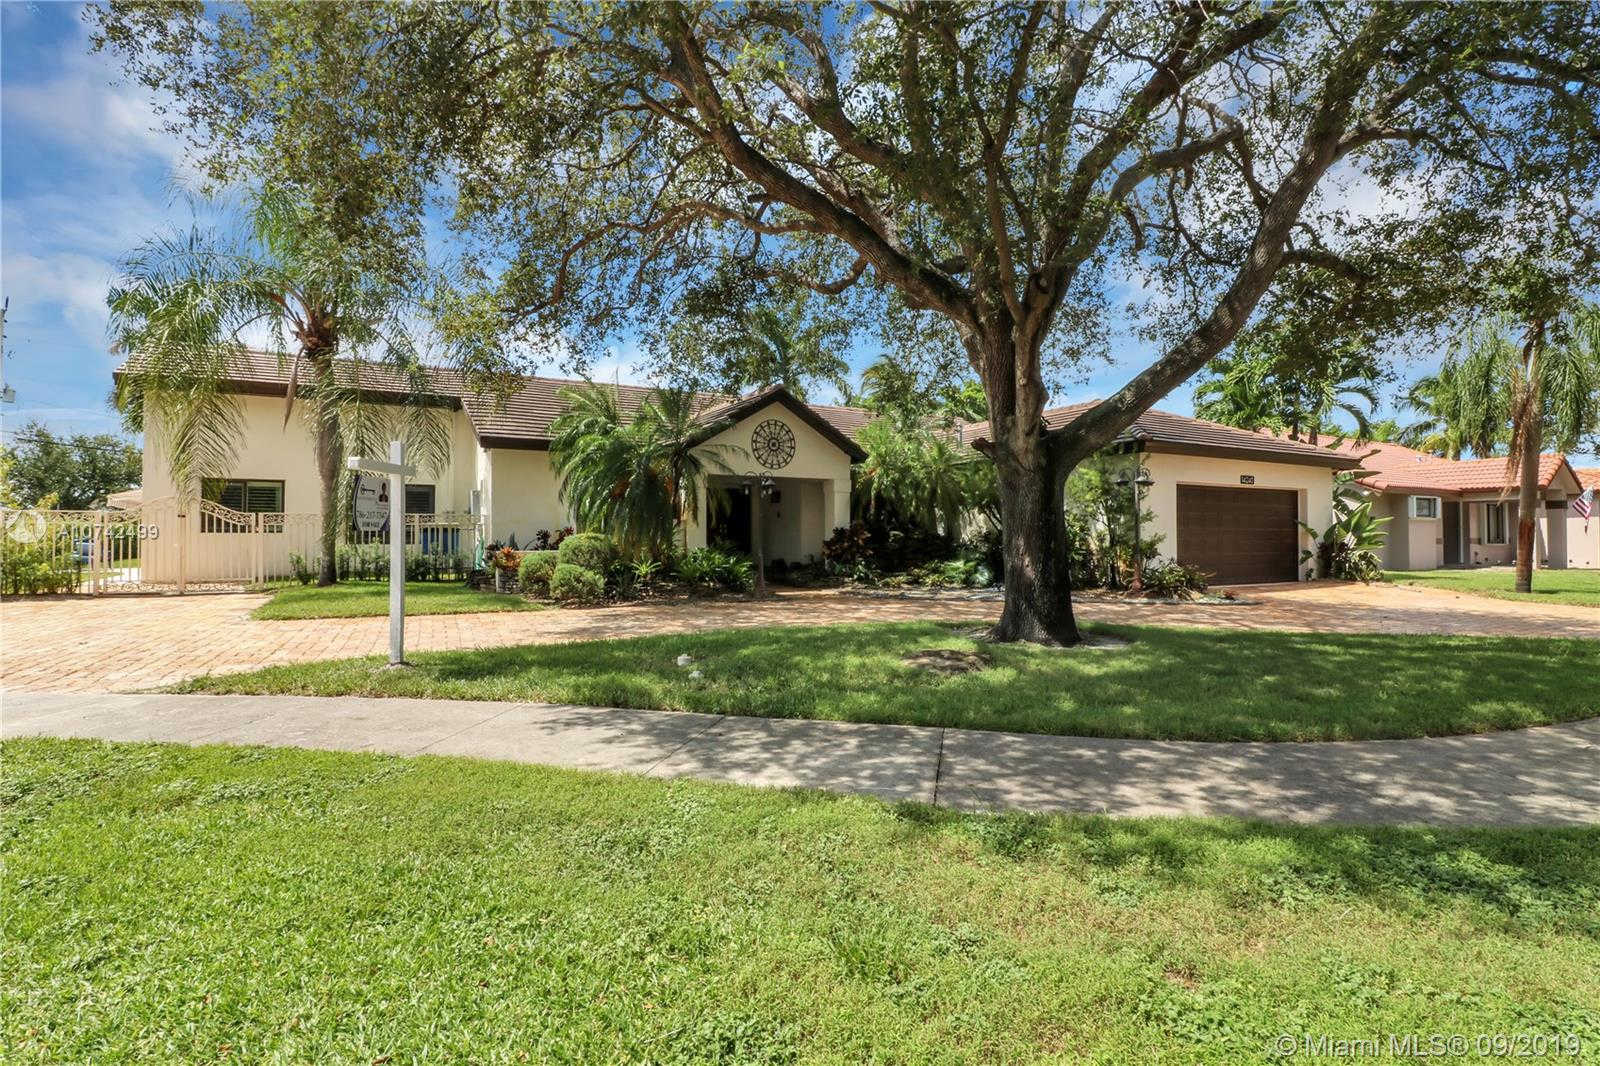 14240 Glencairn Rd, Miami Lakes, FL 33016 is now new to the market!